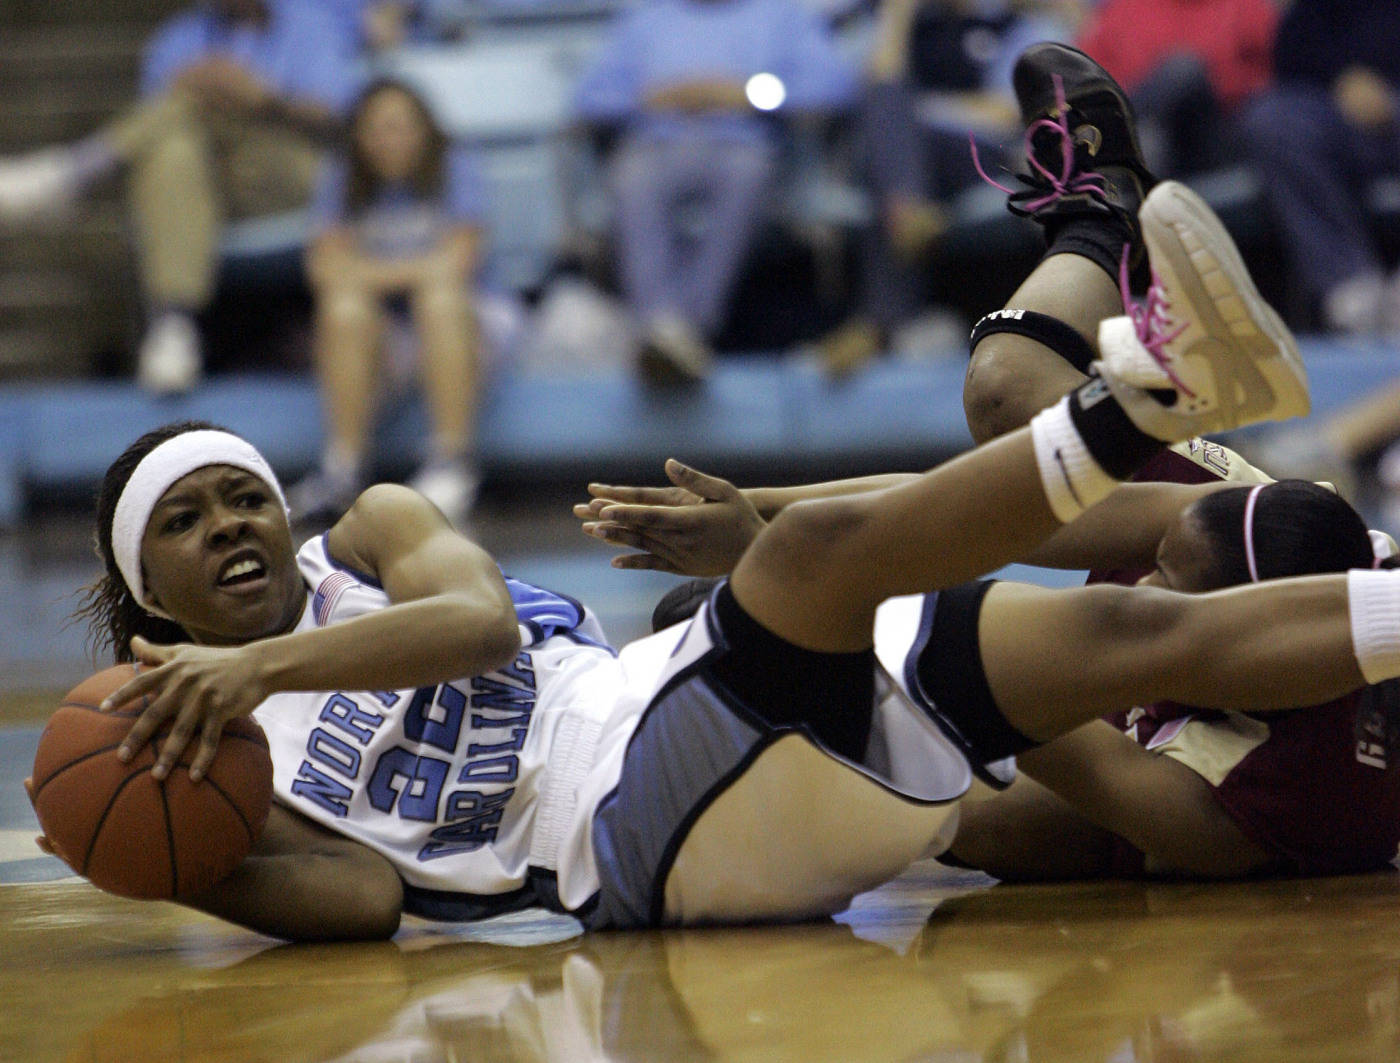 North Carolina's Cetera DeGraffenreid, left, and Florida State's Angel Gray scramble for a loose ball during the second half of a college basketball game in Chapel Hill, N.C., Sunday, Feb. 17, 2008. North Carolina won 97-77. (AP Photo/Gerry Broome)